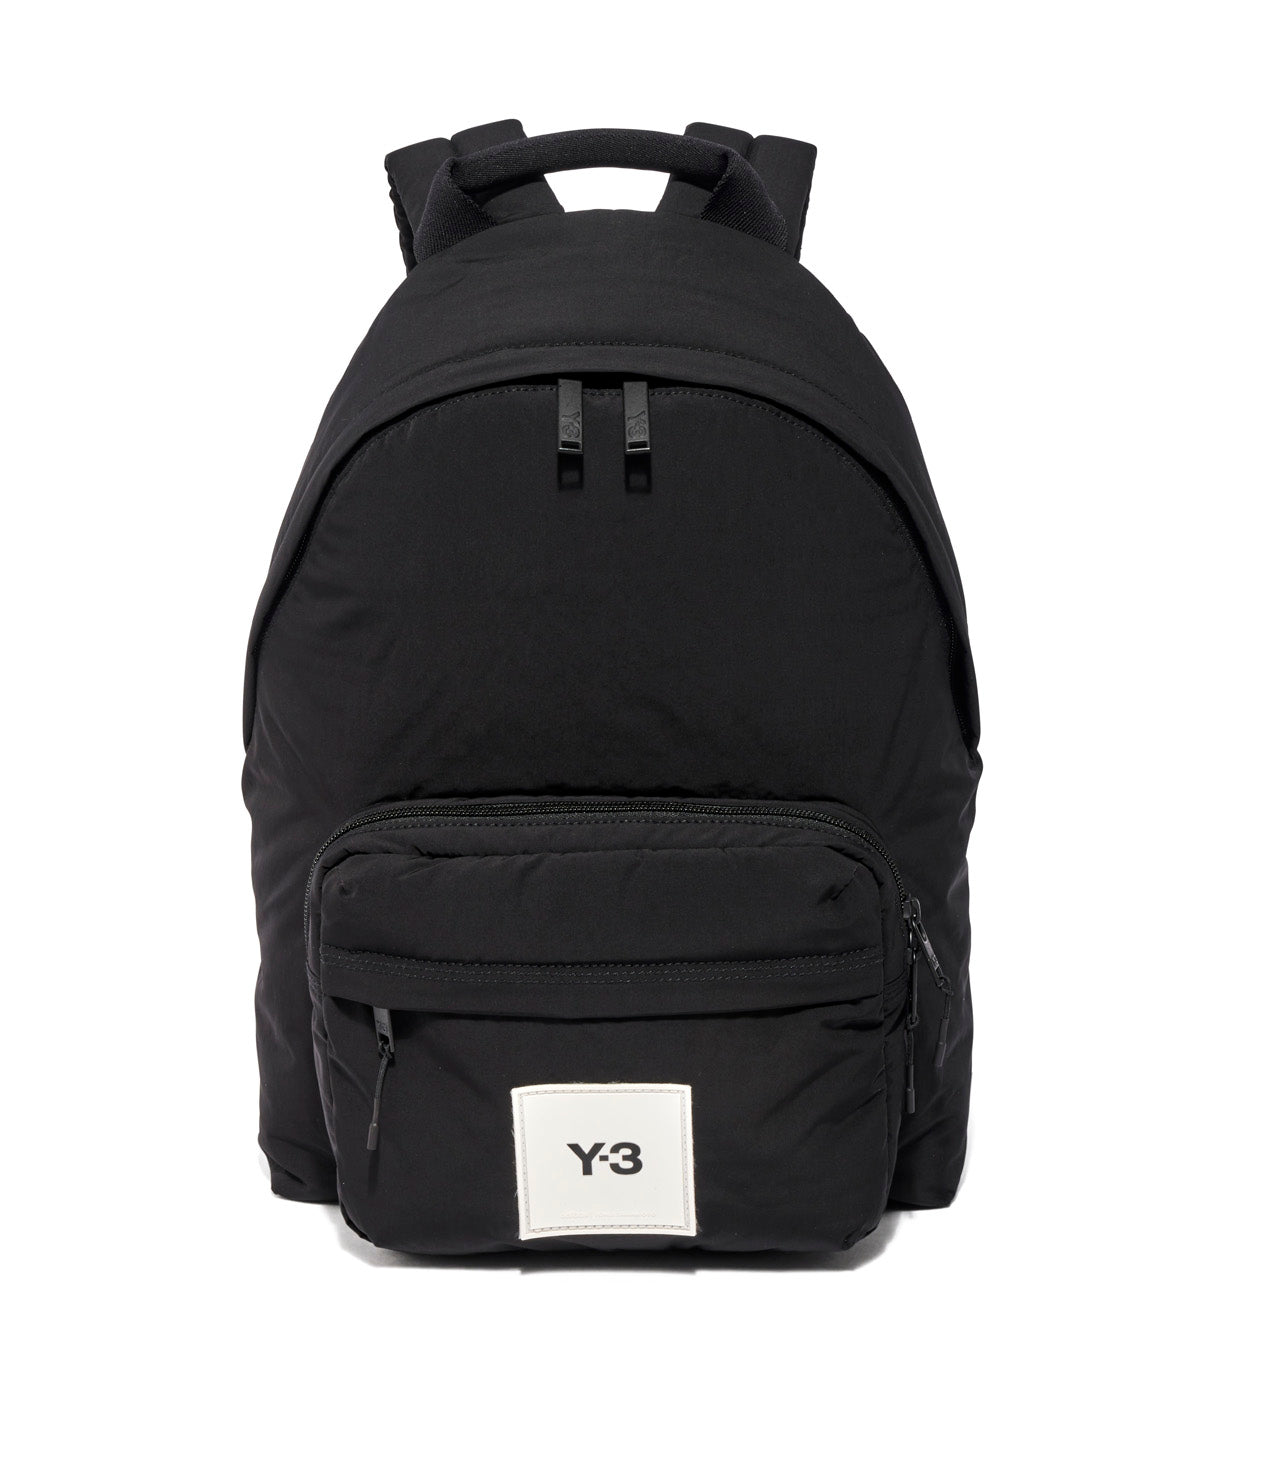 Y-3 TCHLT TWEAK BAG